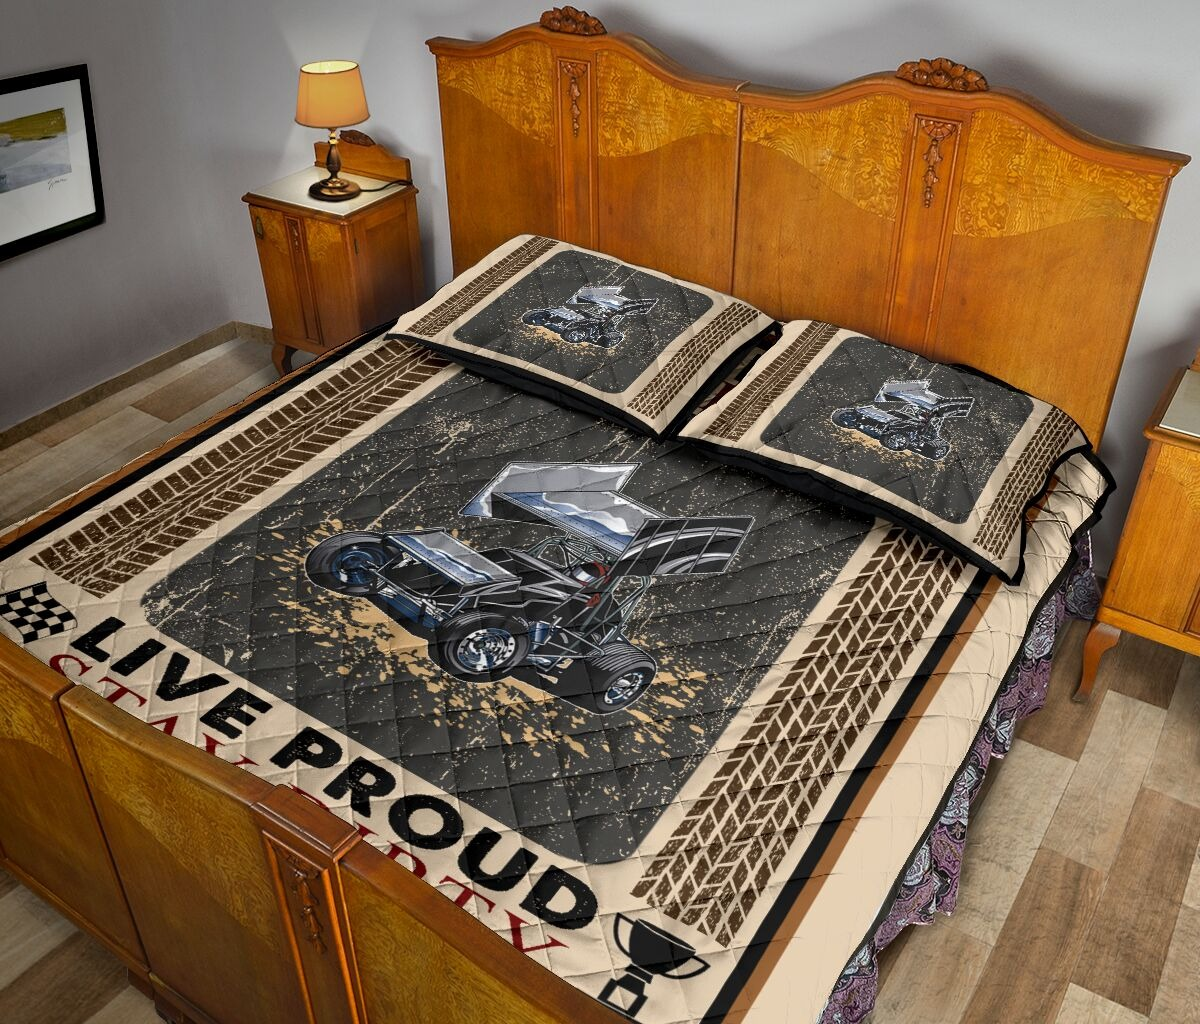 Car racing Live fast live loud live proud stay dirty bedding set3